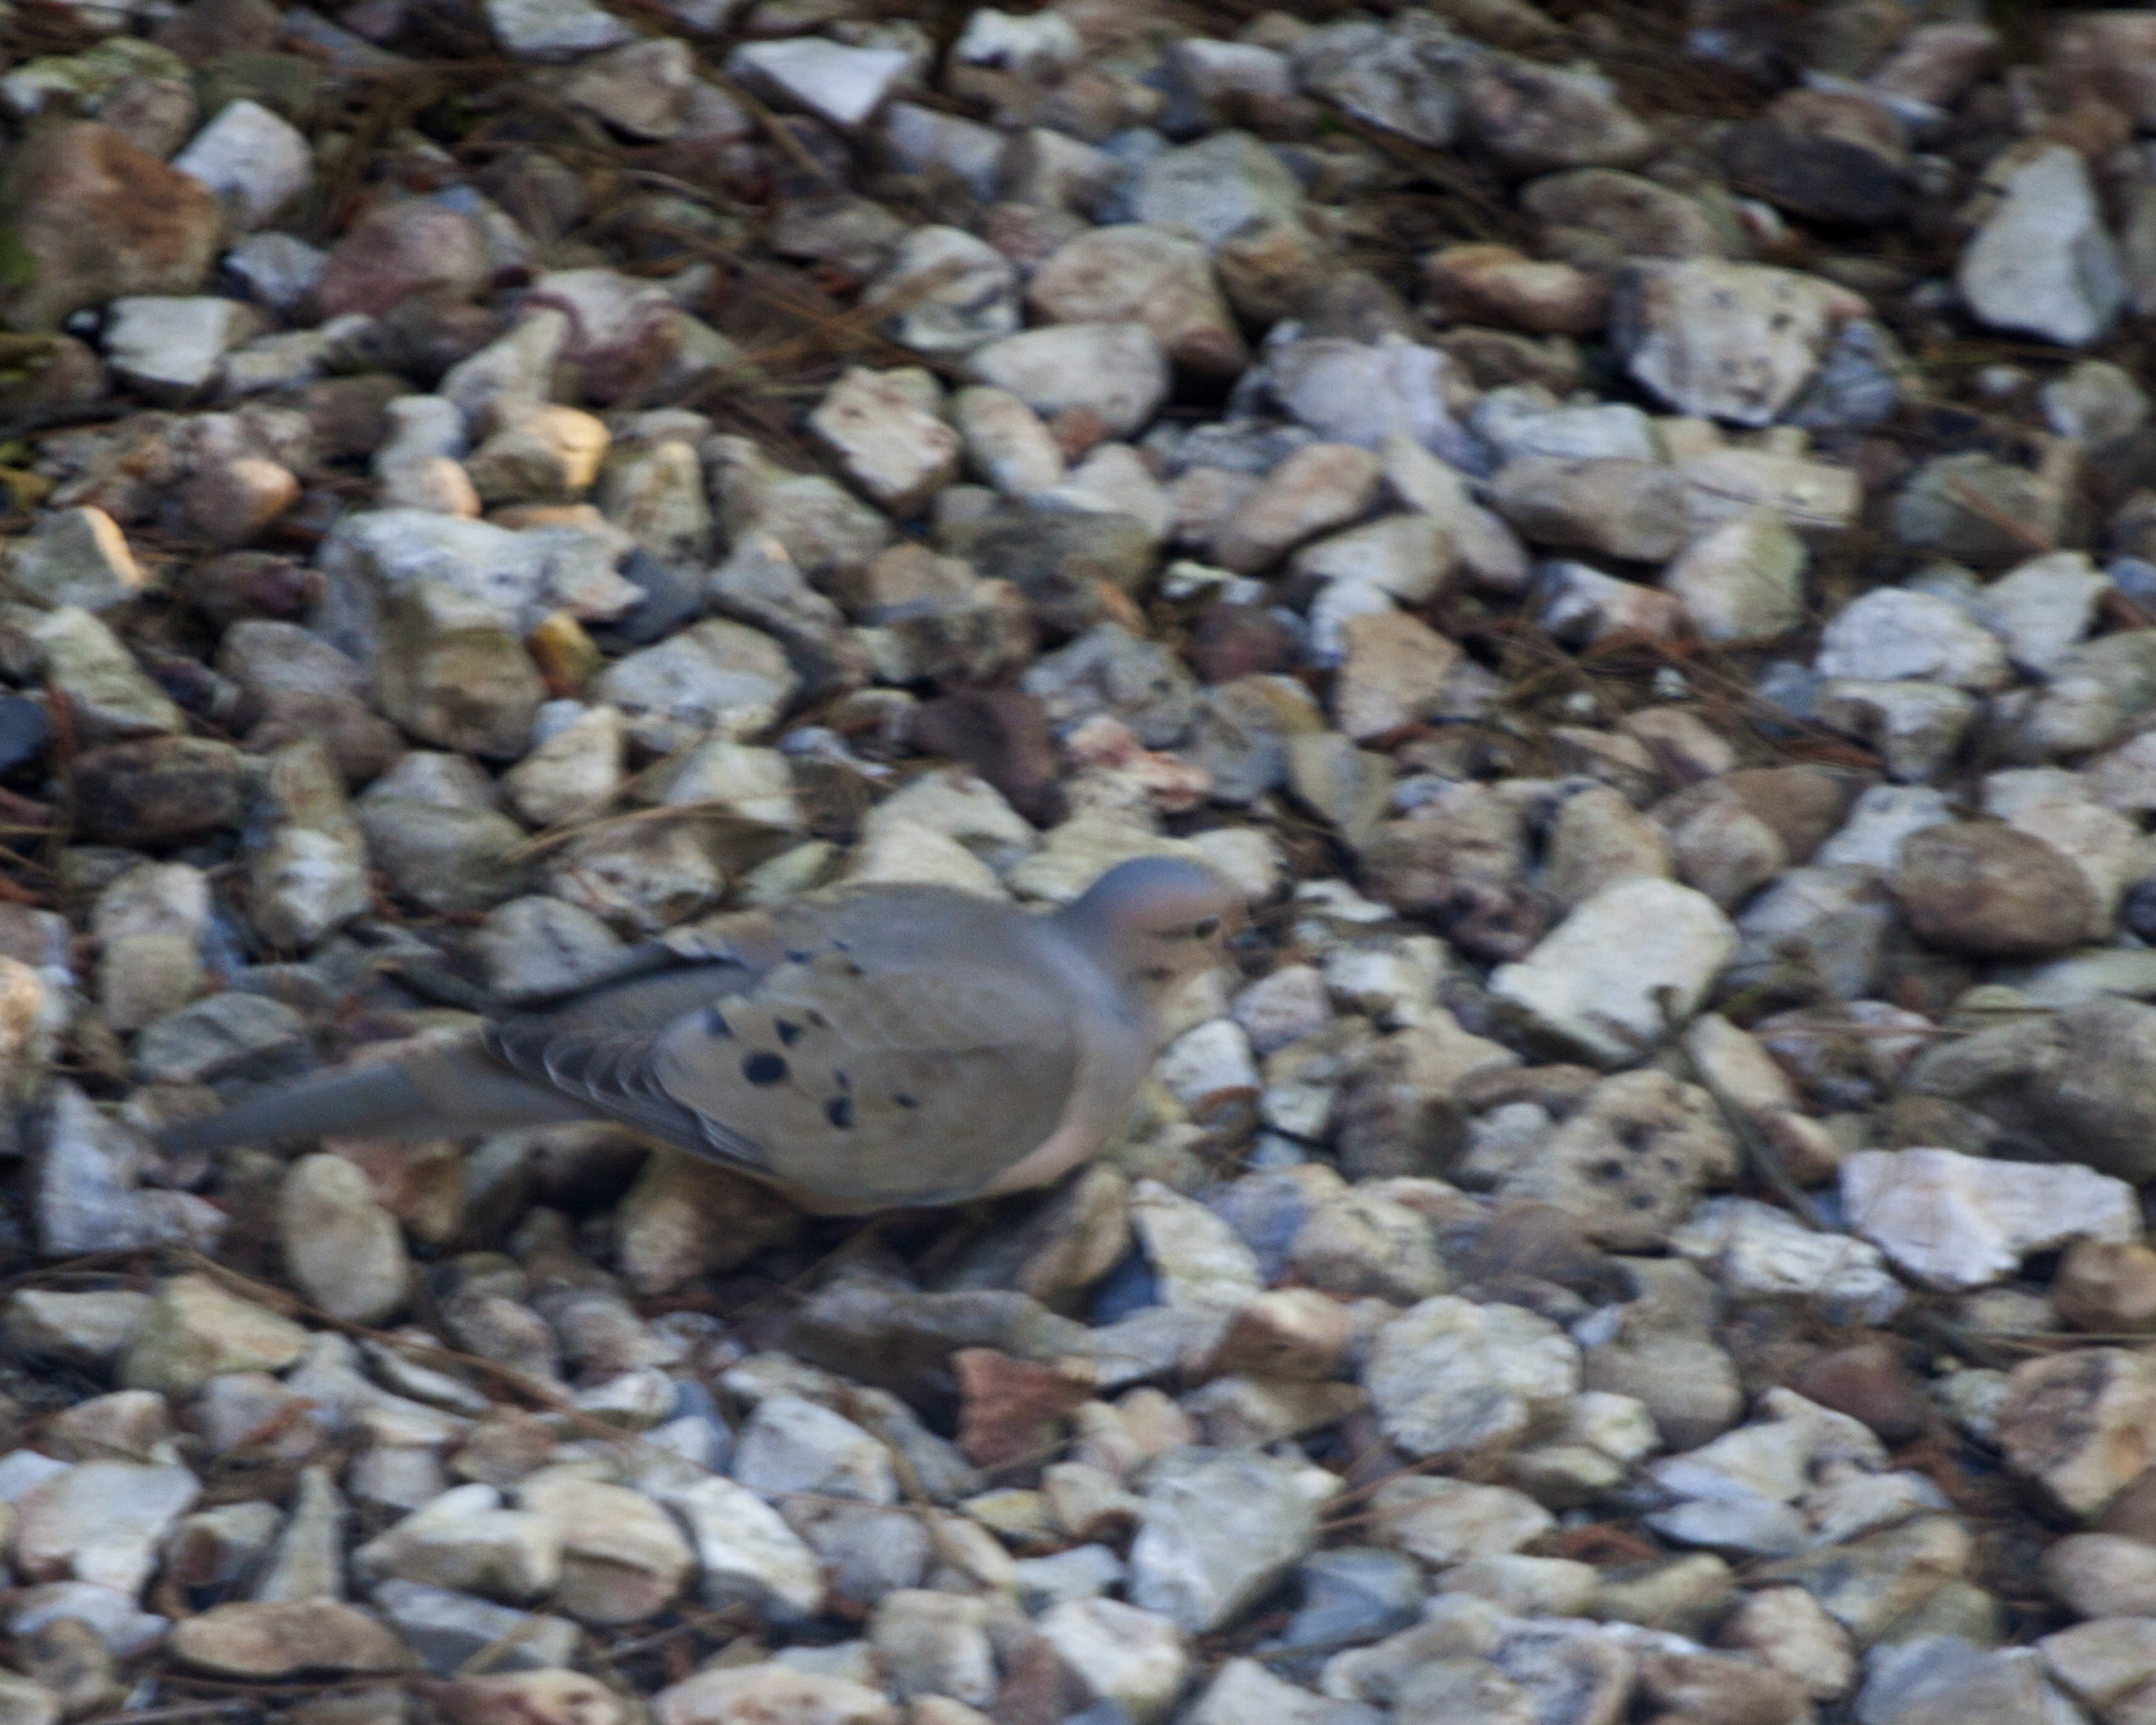 Image of Mourning Dove